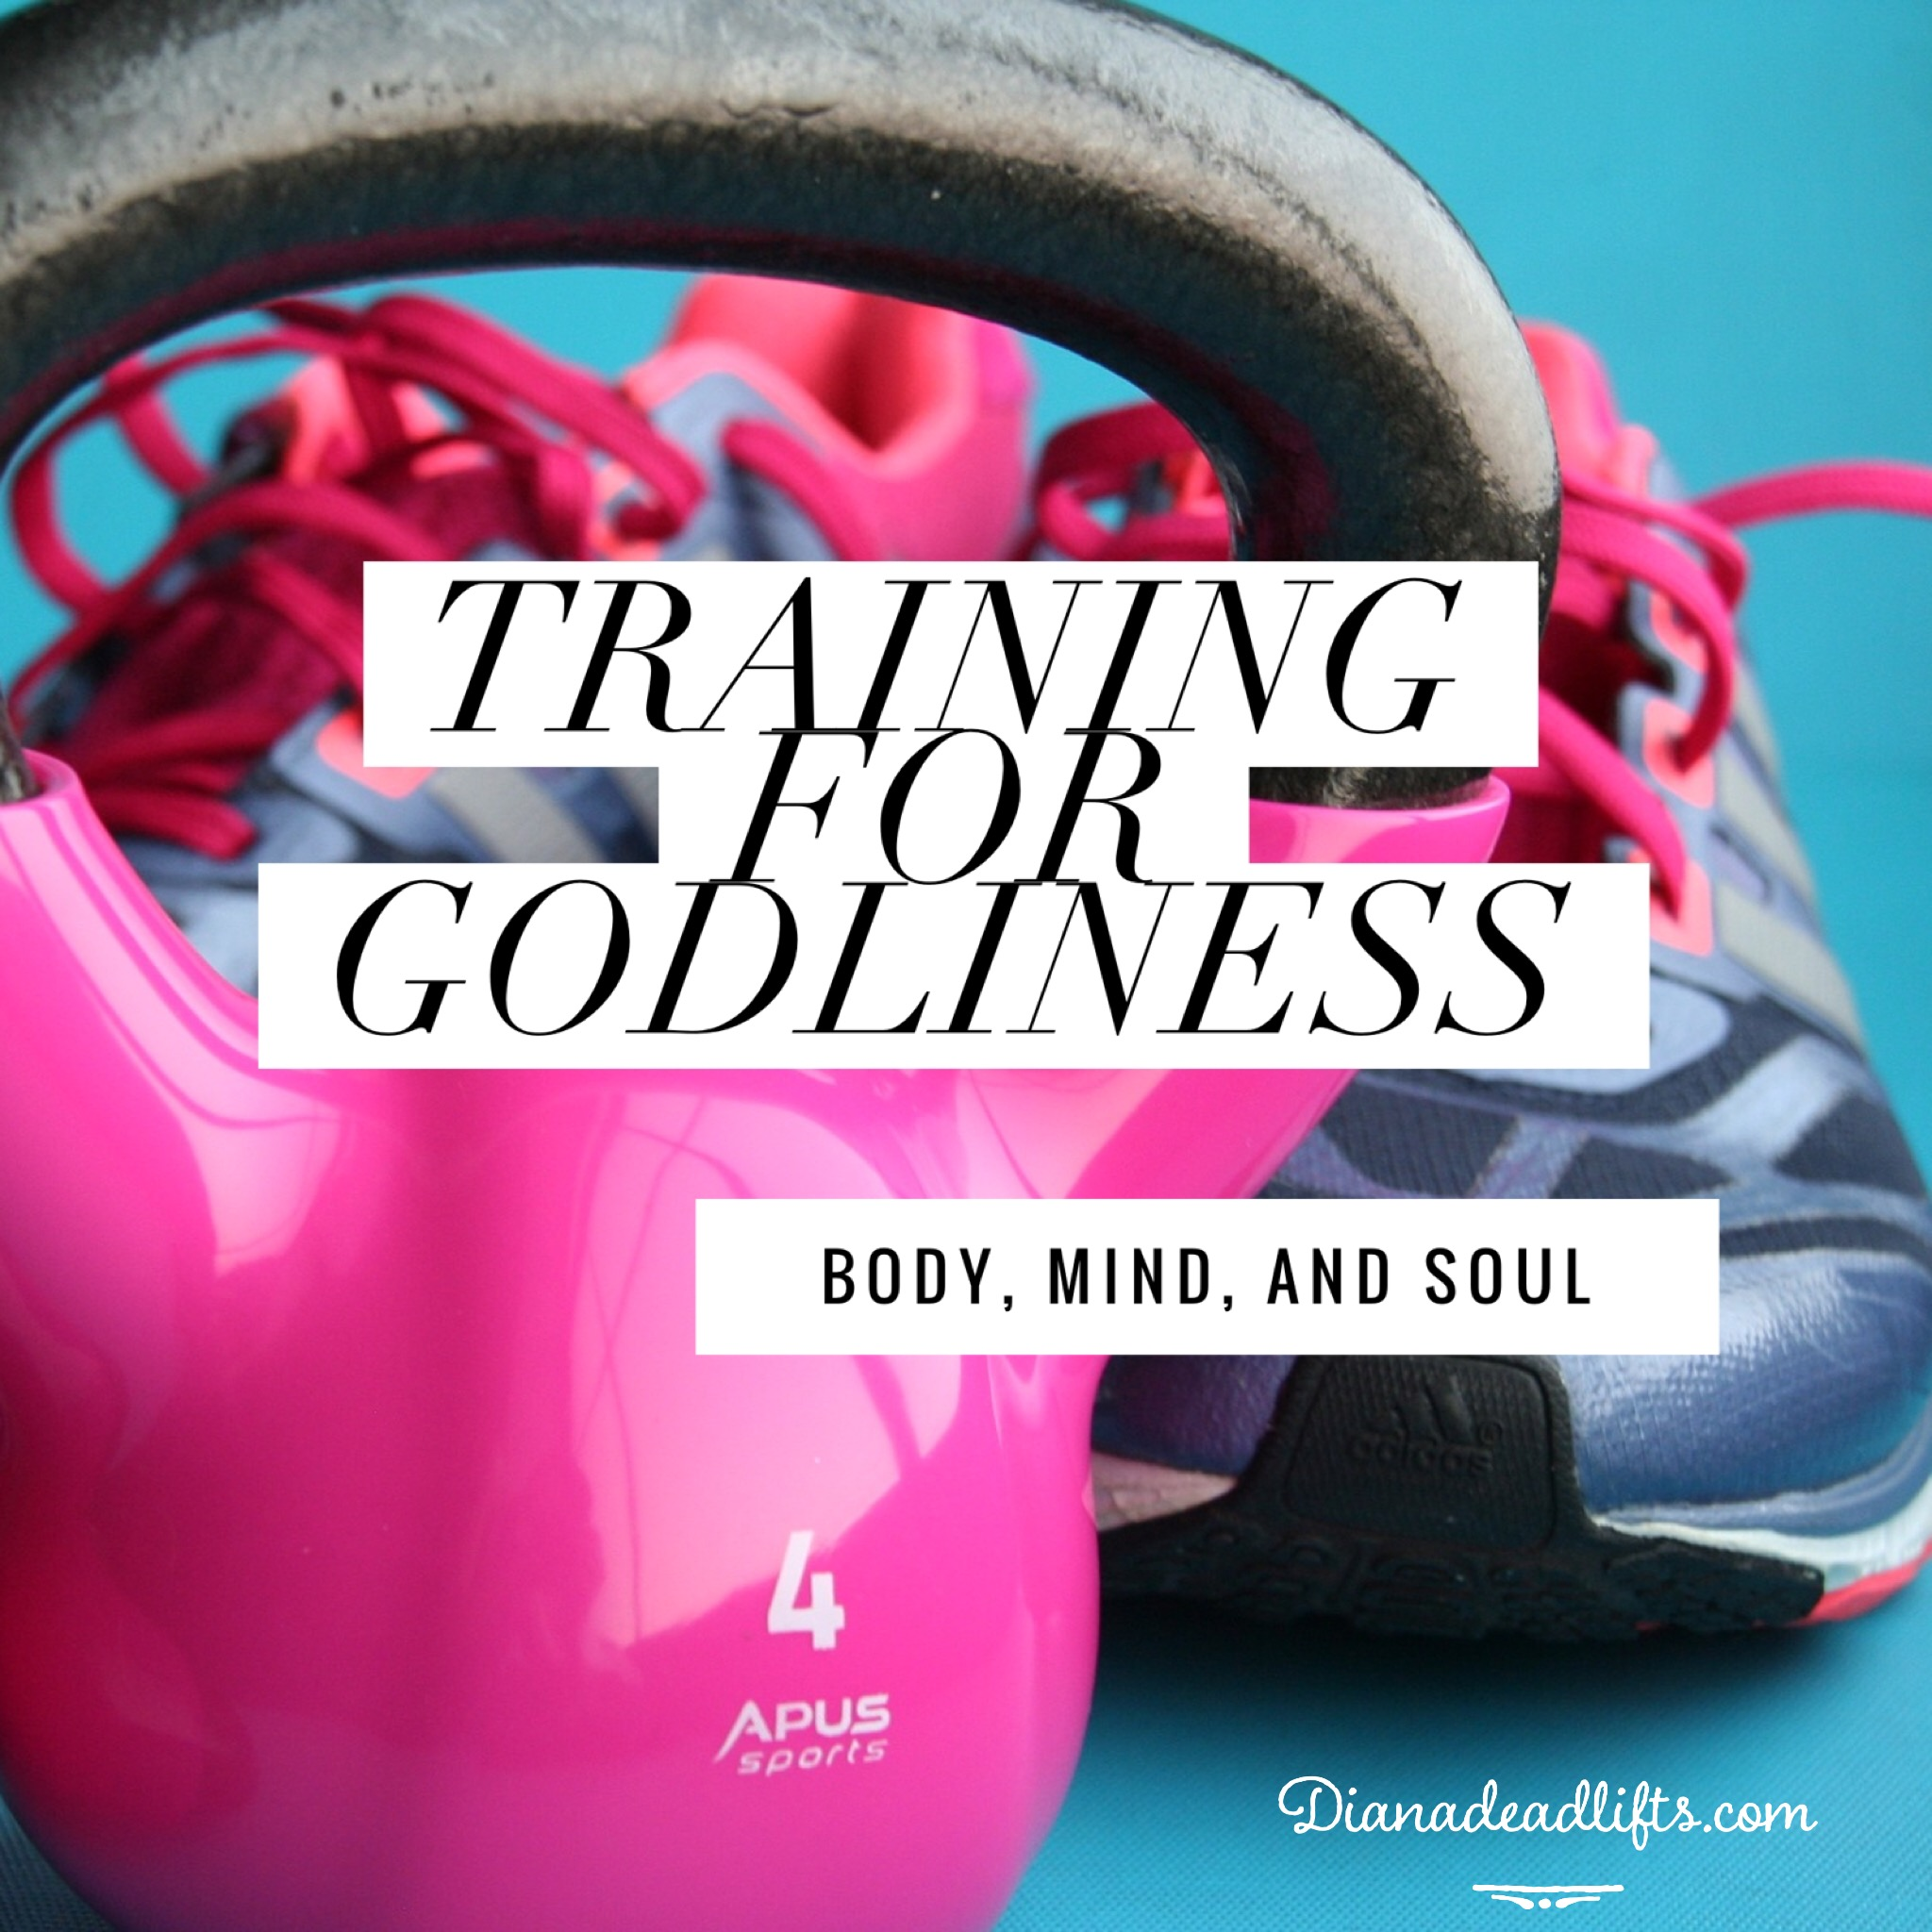 Training for Godliness - Body, Soul, and Spirit